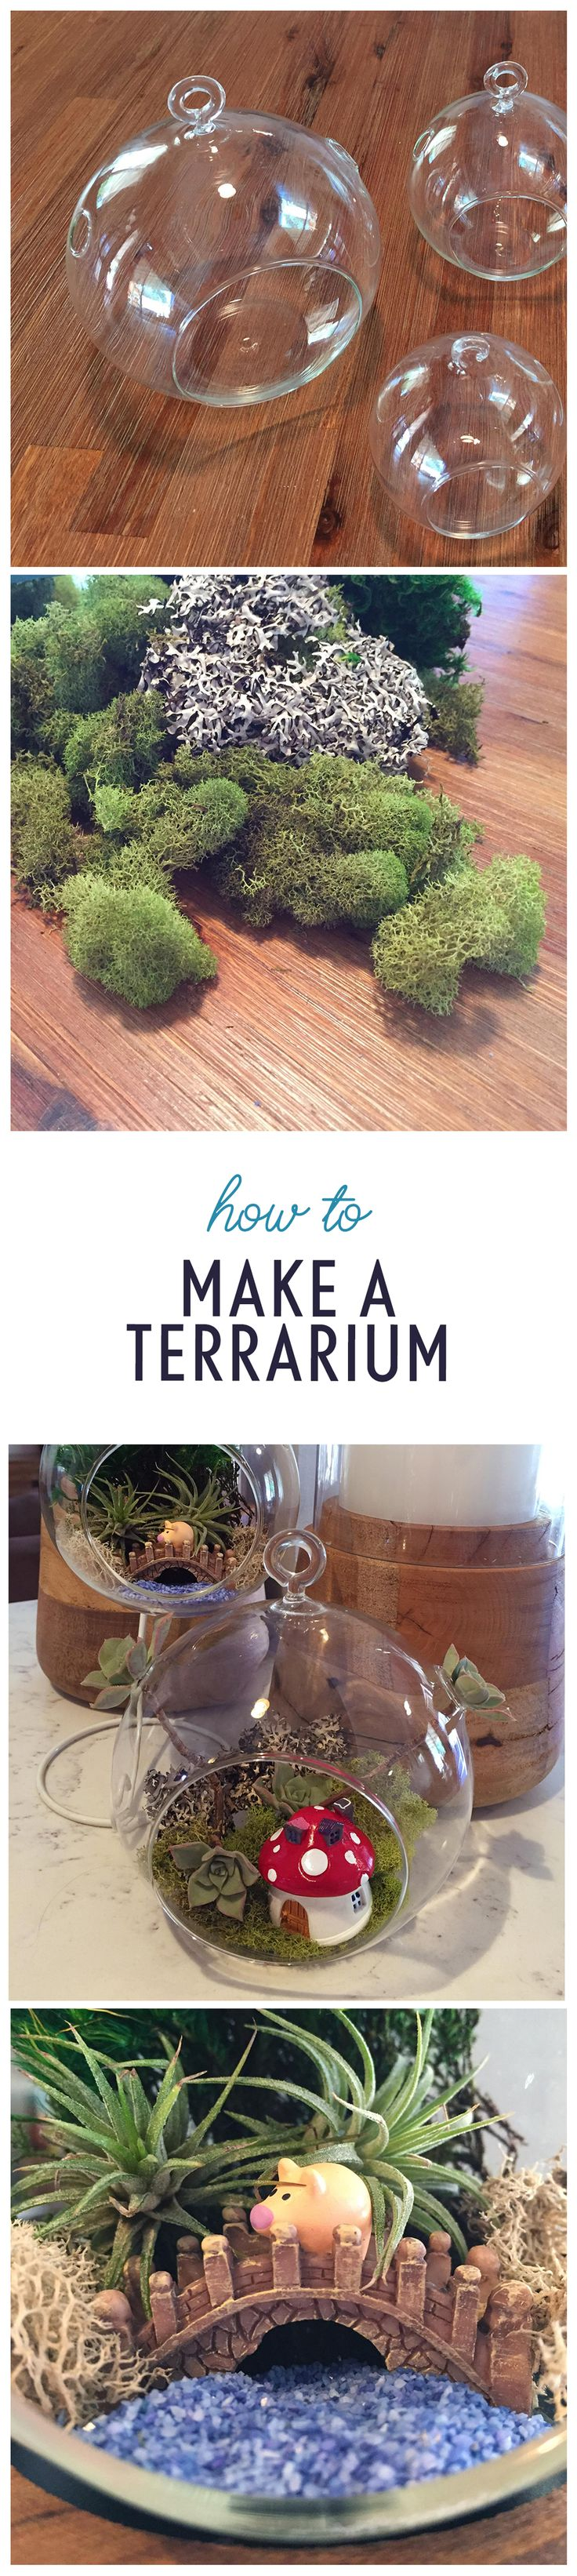 A terrarium is an easy way to make your own tabletop garden! Check out this free printable guide and get ideas for your own open or closed DIY terrarium using air plants, succulents, moss, and more. You can even make a fairy garden with miniatures!